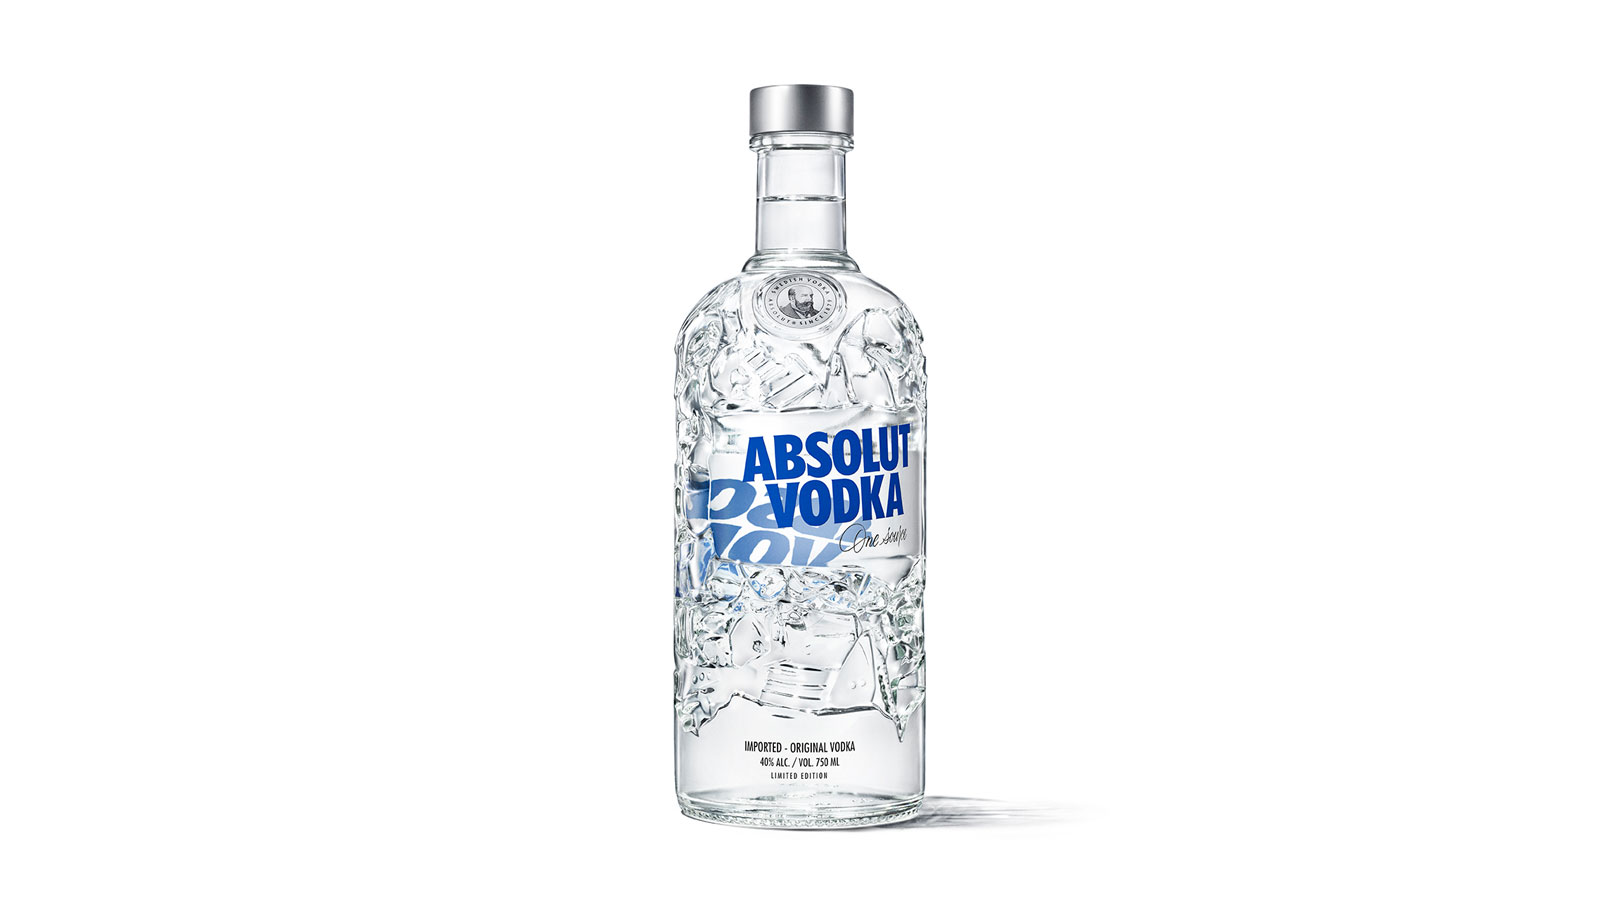 Absolut launches Absolut Comeback, a new limited-edition bottle celebrating recycling